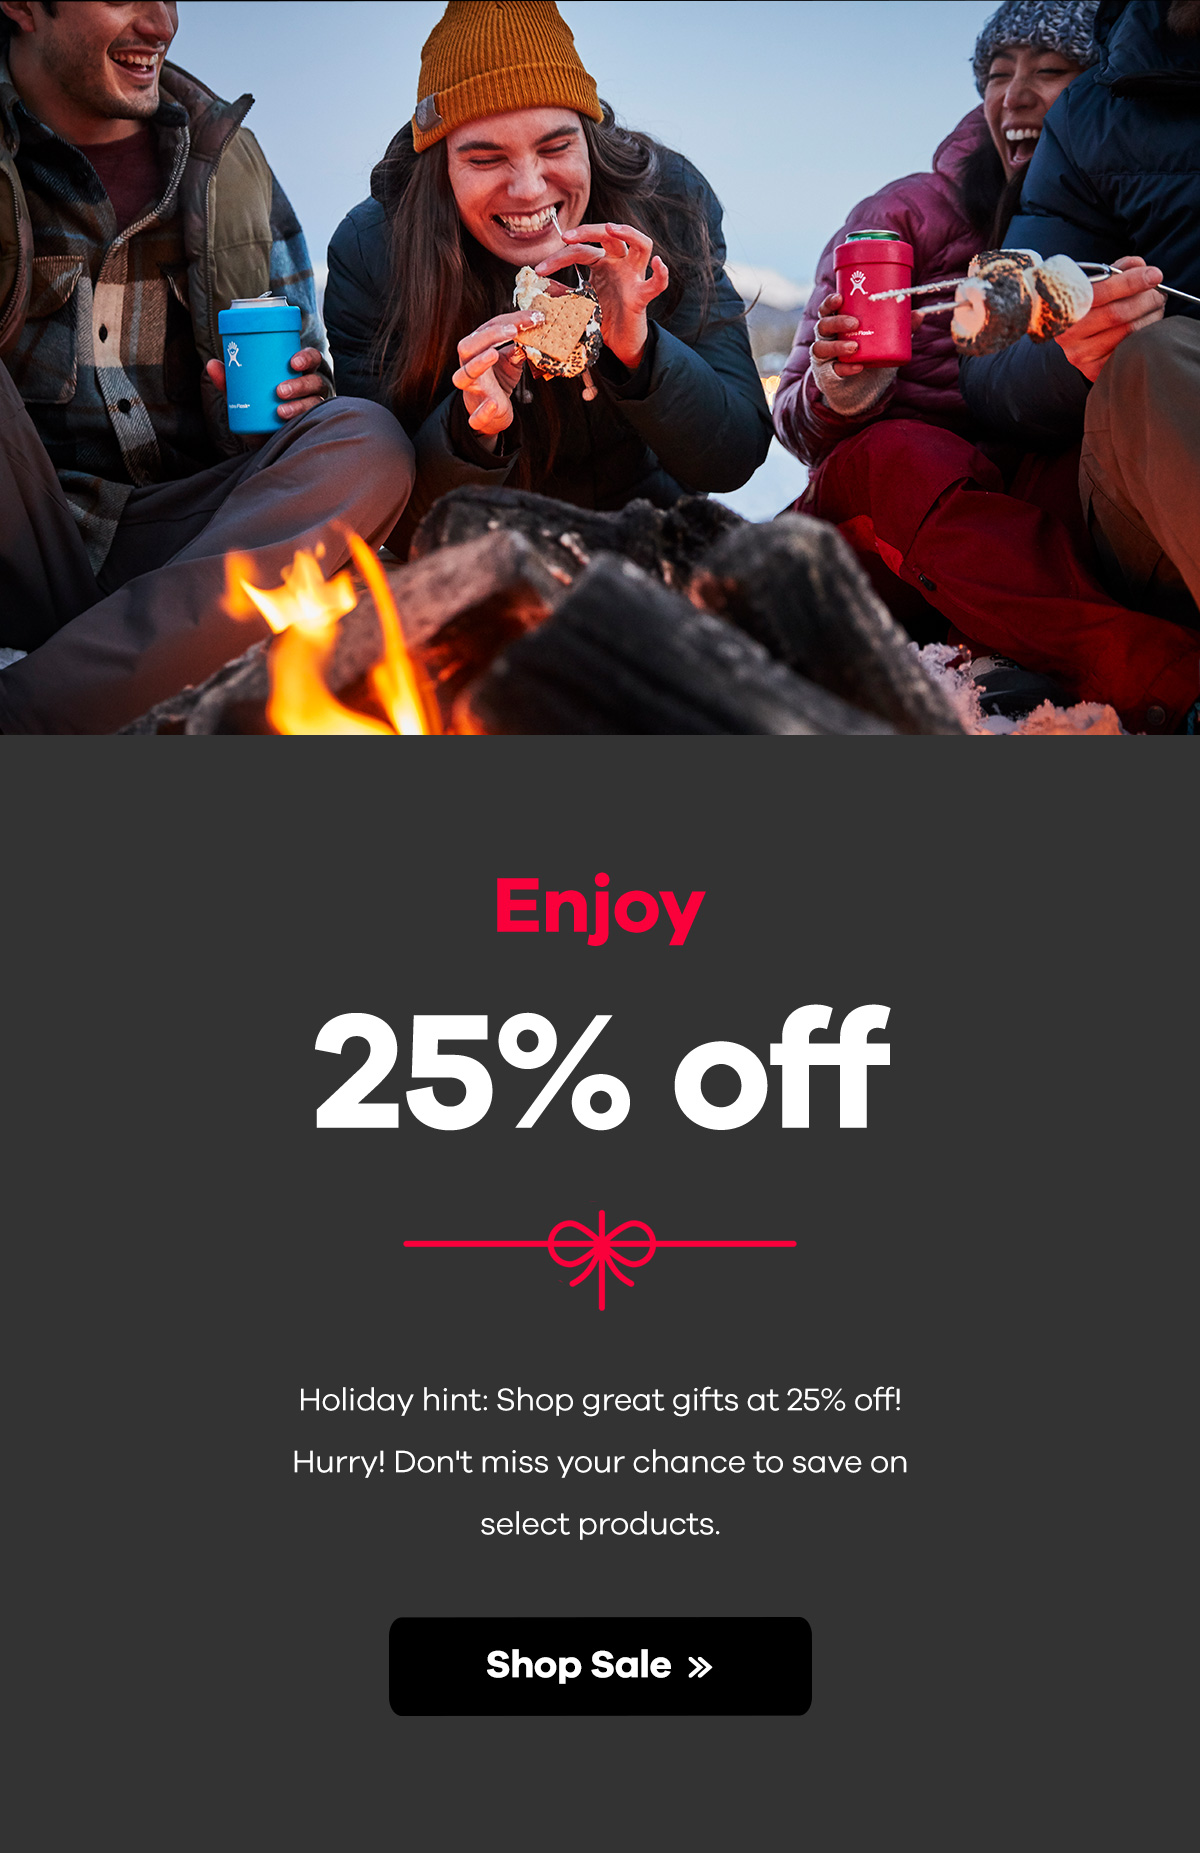 Enjoy 25% off. Holiday hint: Shop great gifts at 25% off! Hurry! Don't miss your chance to save on select products. | SHOP SALE >>